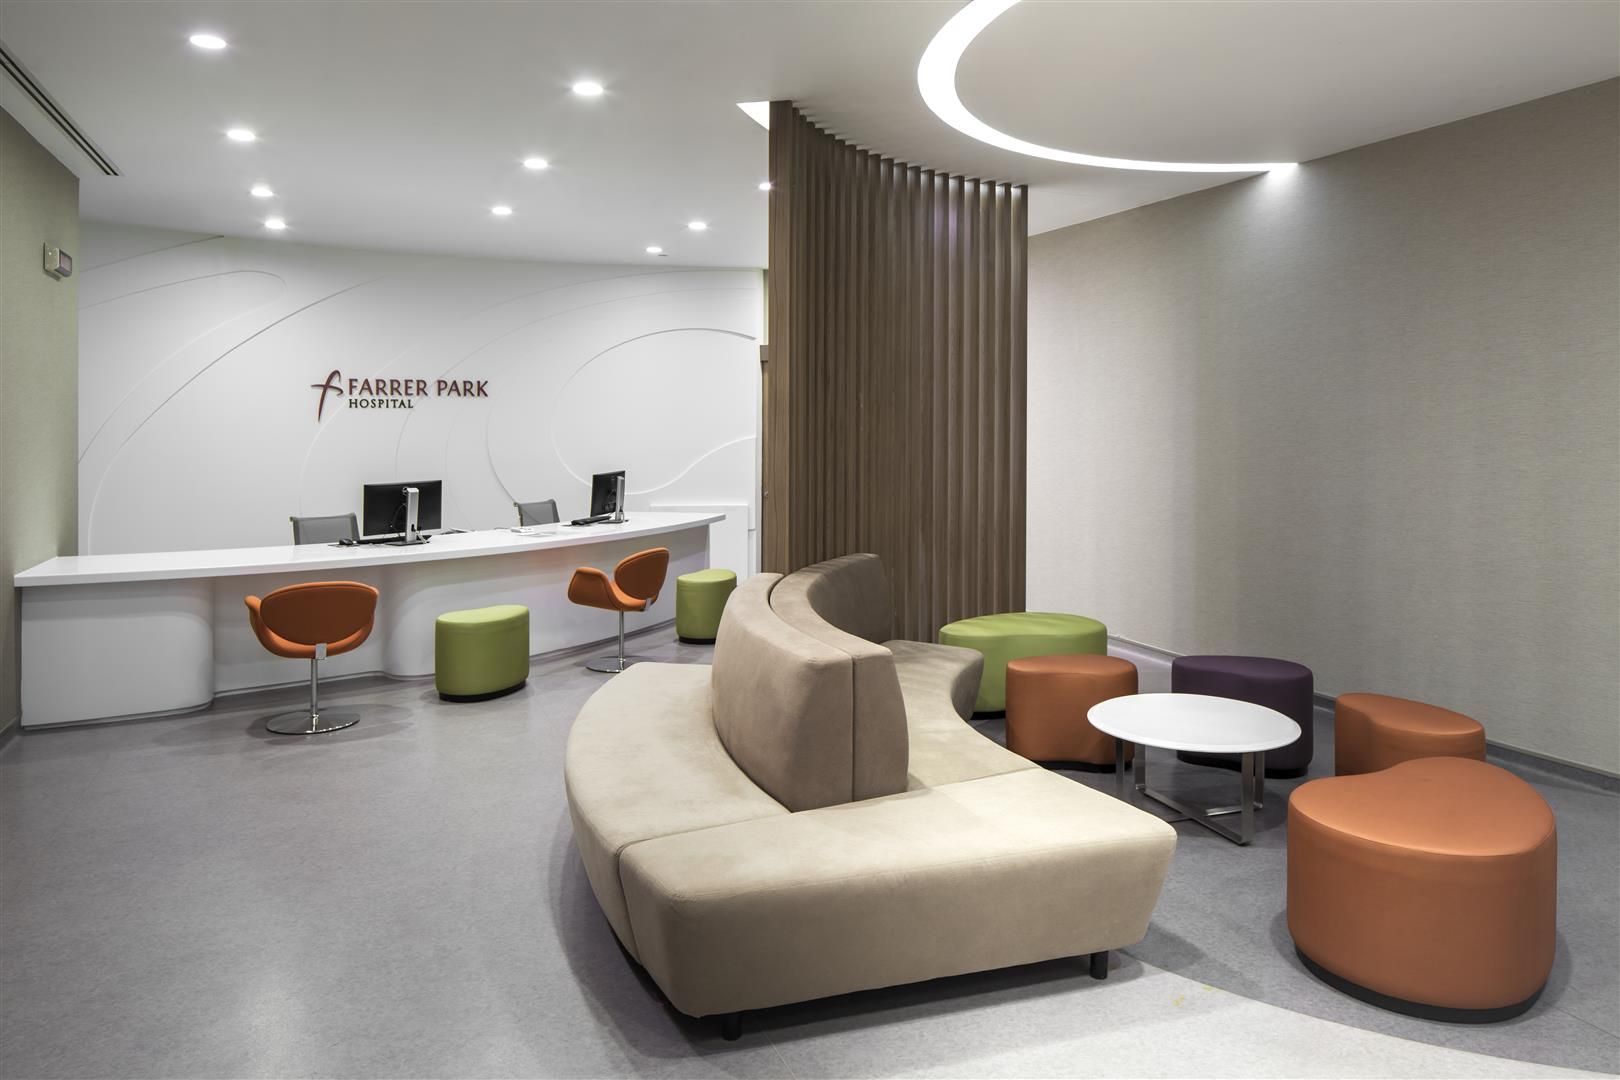 Seating Area At The Farrer Park Hospital Singapore By Dp Design